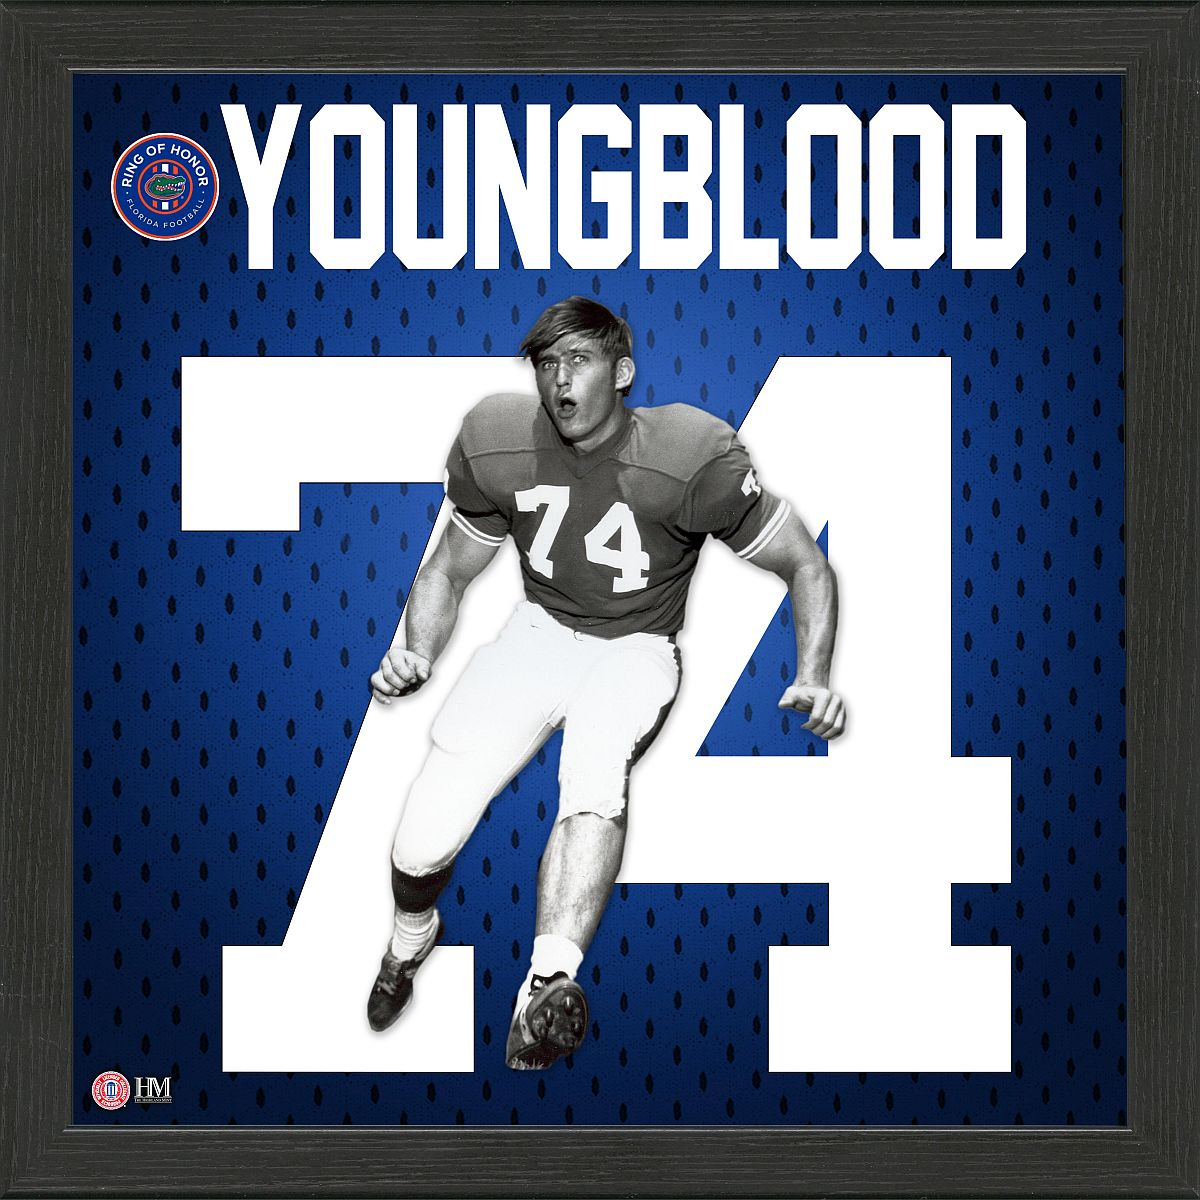 Jack Youngblood ROH Jersey Framed Photo